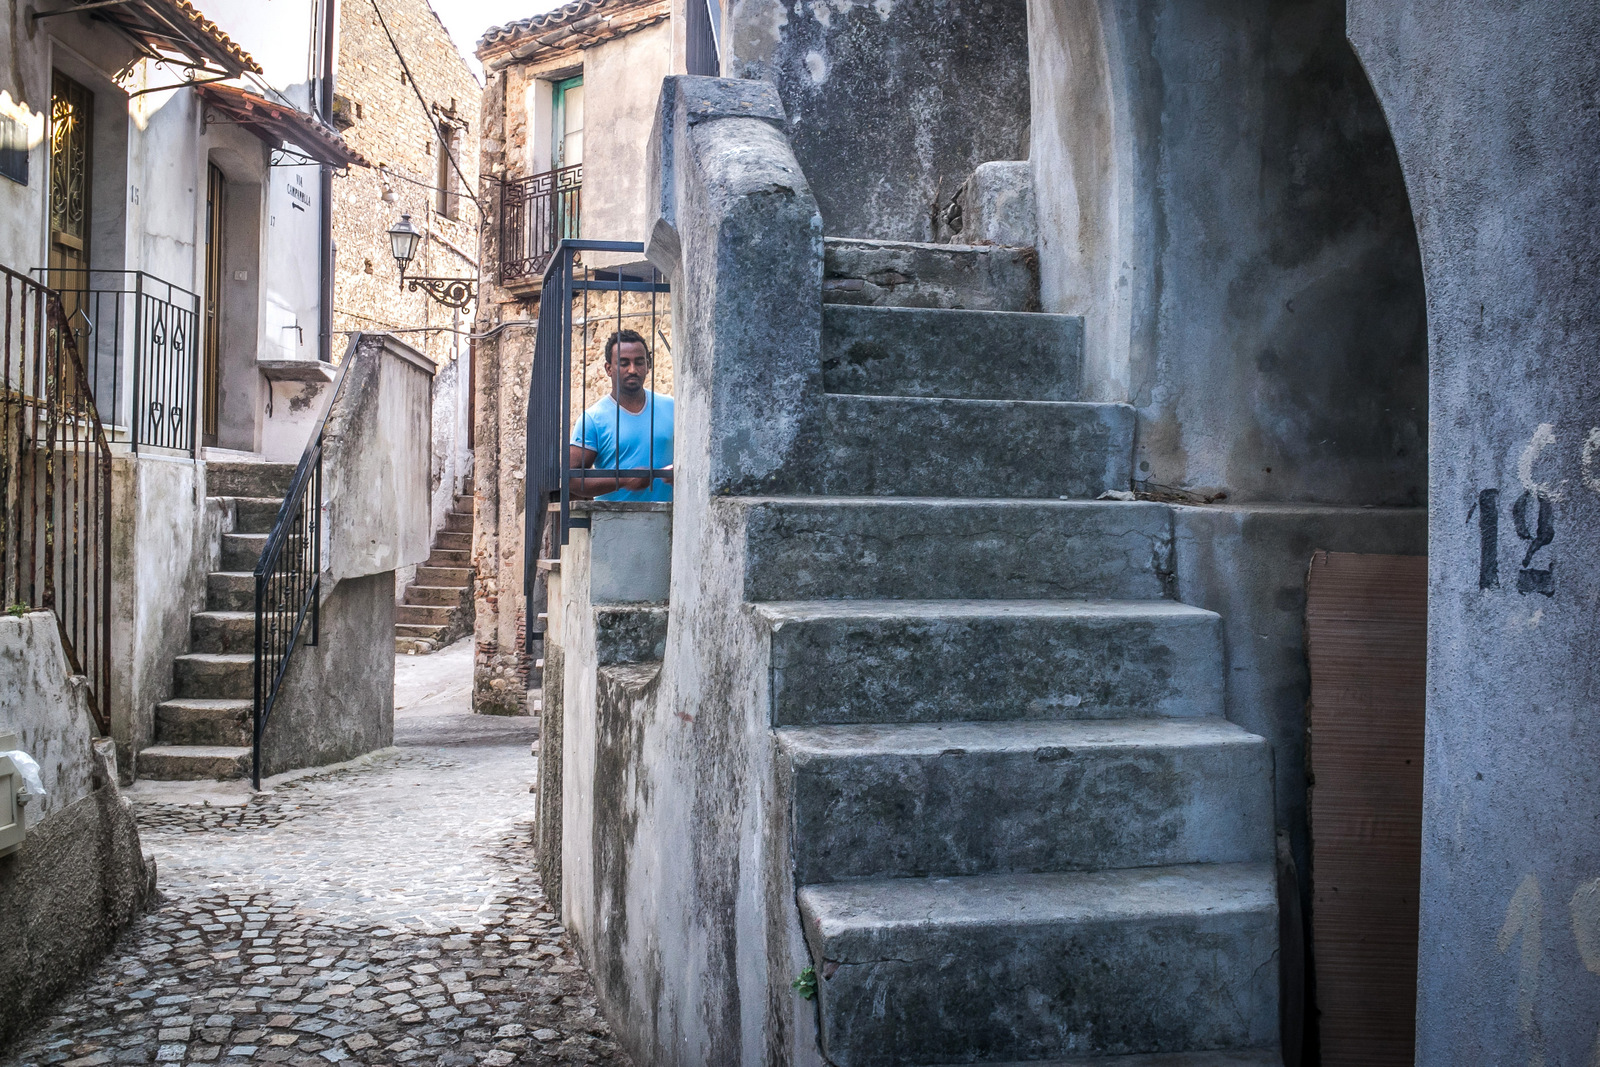 A migrant of historical center of Riace